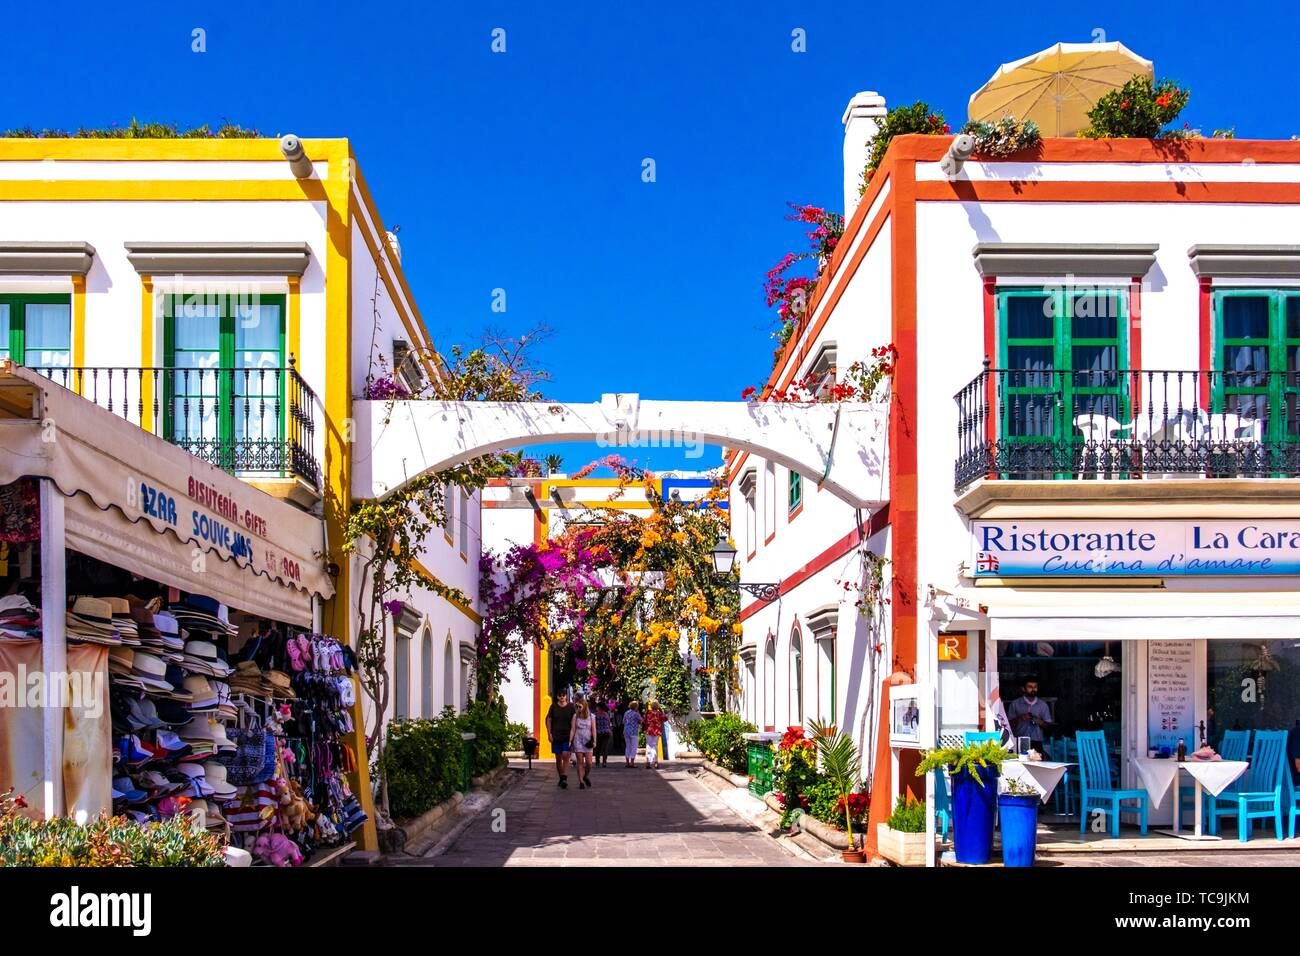 White houses with blooming Baougainvillea in the 'Little Venice' area of Mogan, Gran Canaria, Canary Islands. Stock Photo